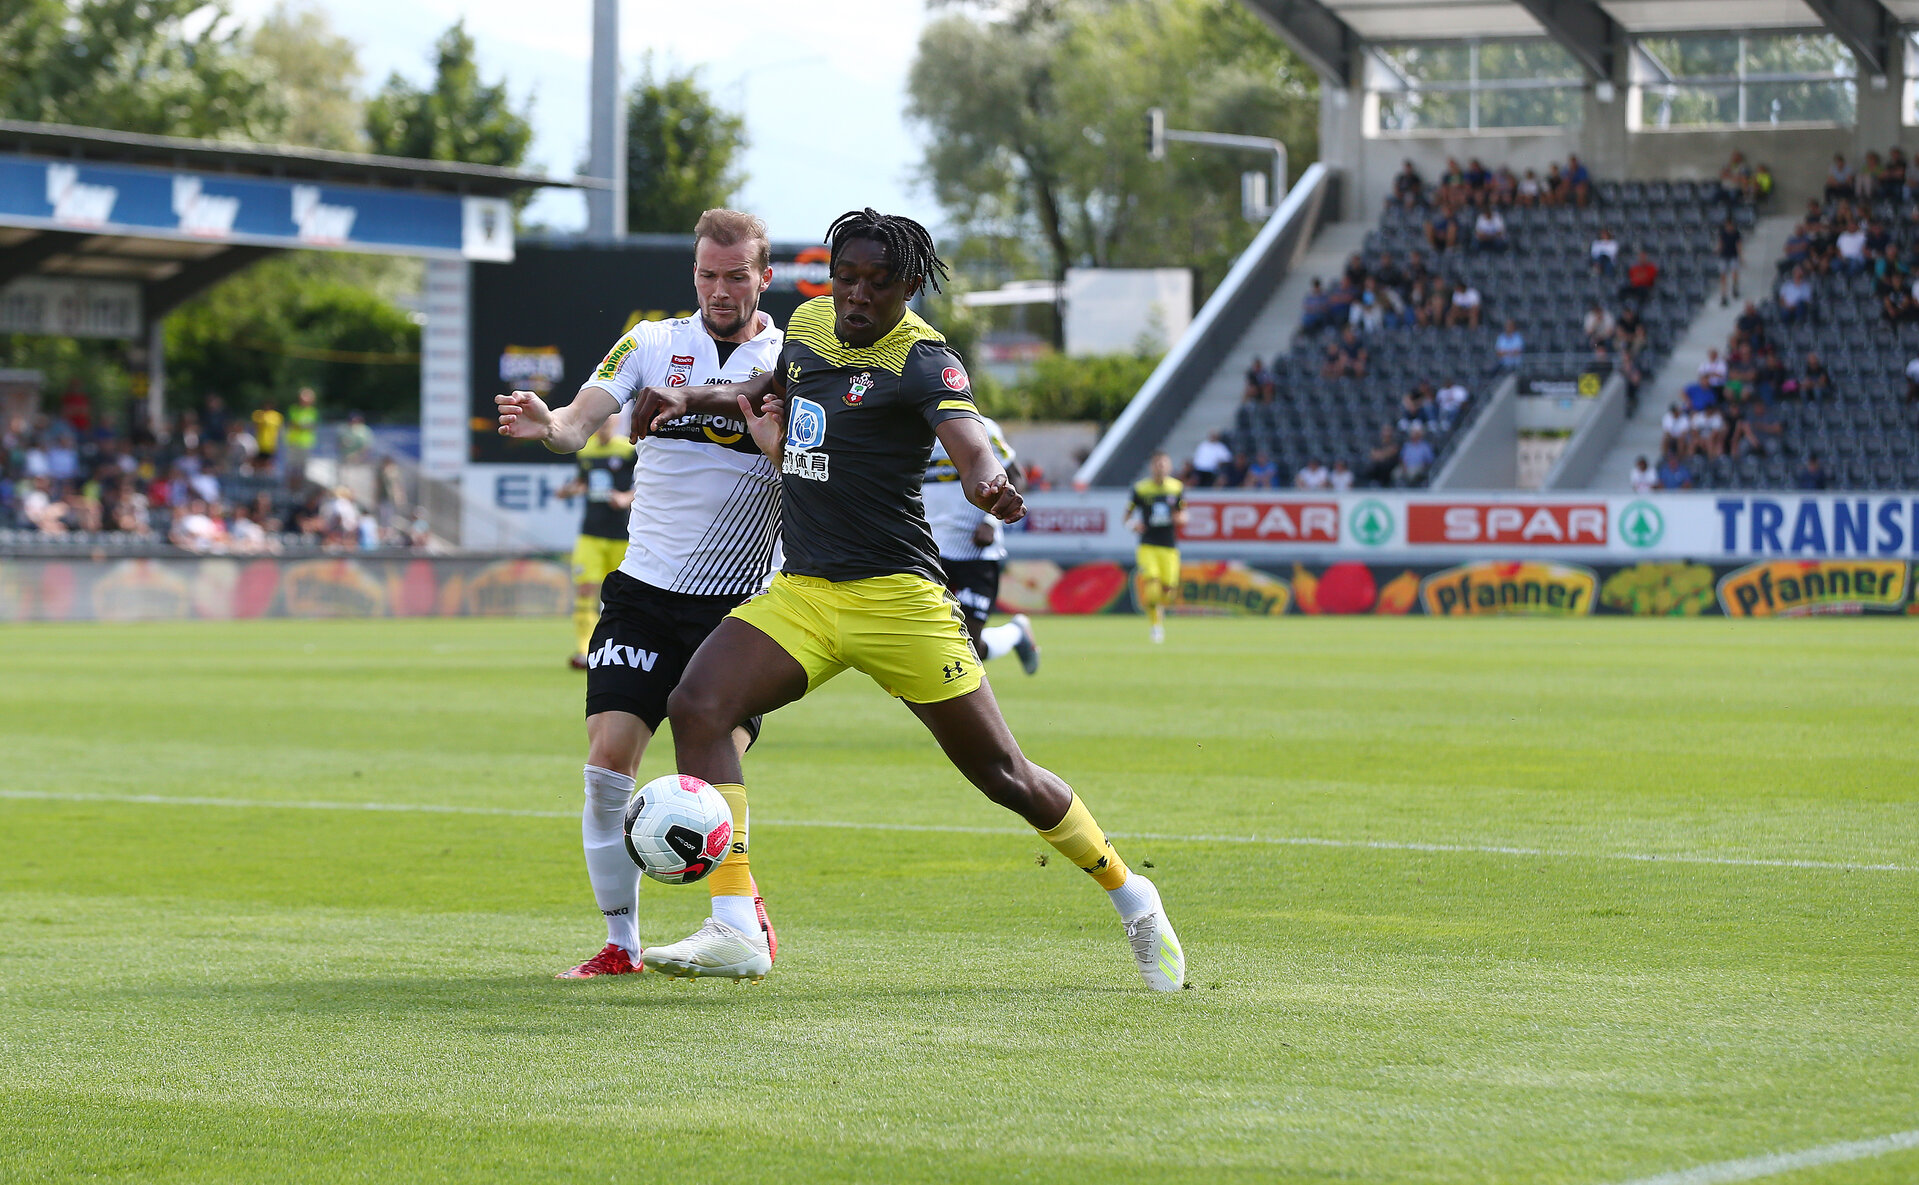 ALTACH, AUSTRIA - JULY 14: Dan N'Lundulu(R) of Southampton during the pre-season friendly match between SCR Altach and Southampton FC at The Cashpoint Arena on July 14, 2019 in Altach, Austria. (Photo by Matt Watson/Southampton FC via Getty Images)